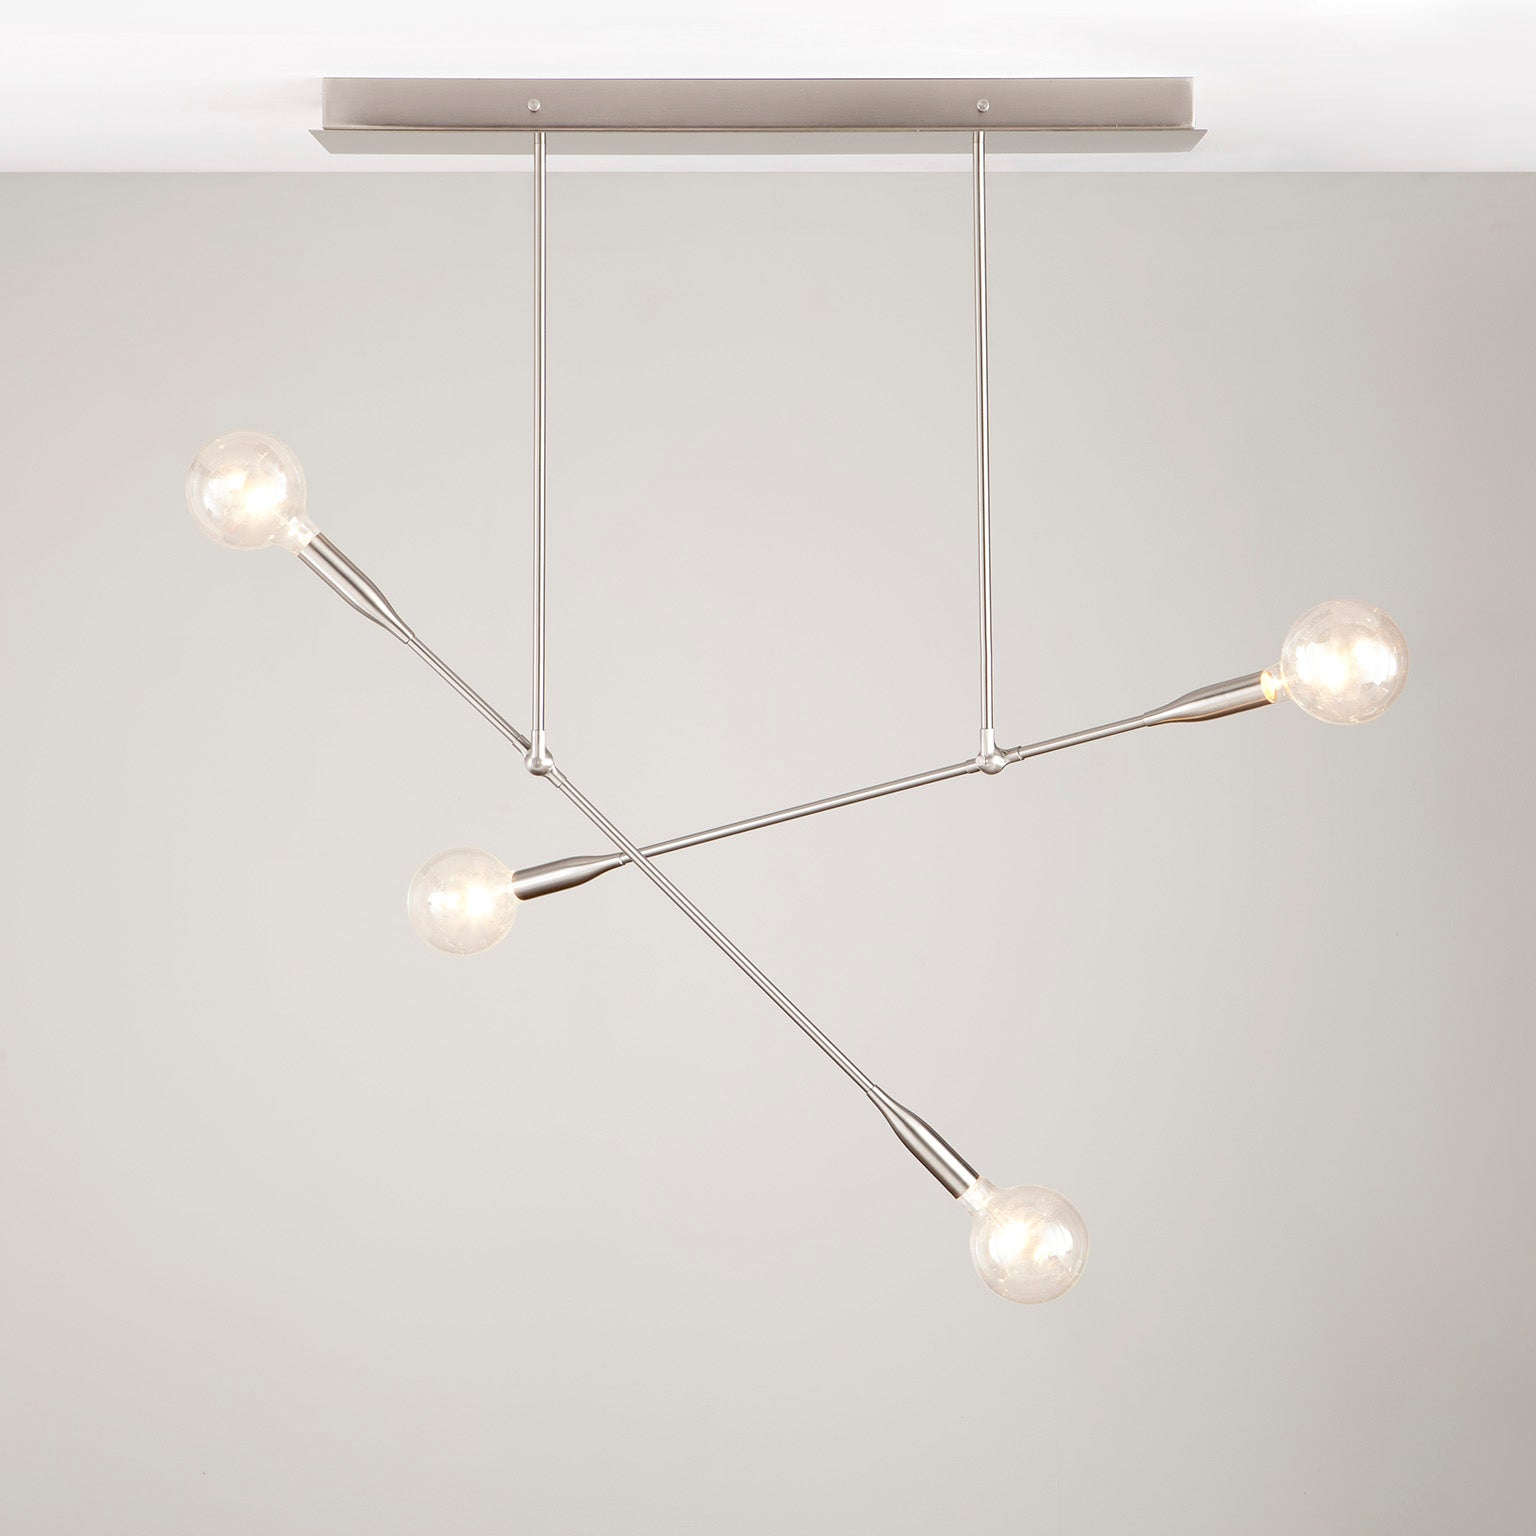 Sorenthia Double modern chandelier in Brushed Nickel by Studio DUNN on grey background